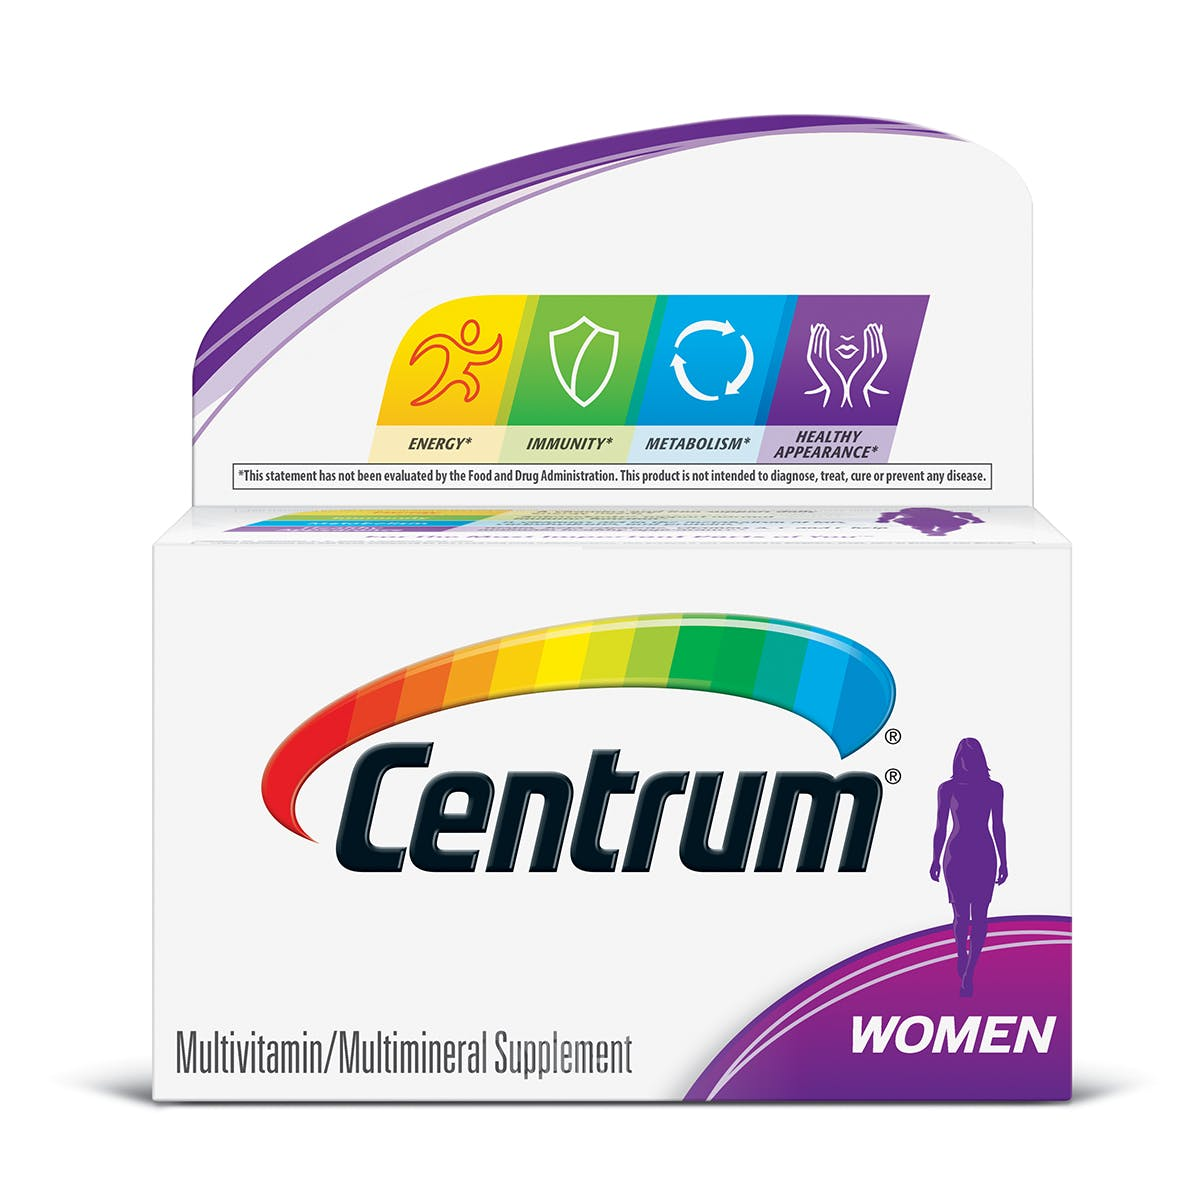 Box of Centrum Women multivitamins